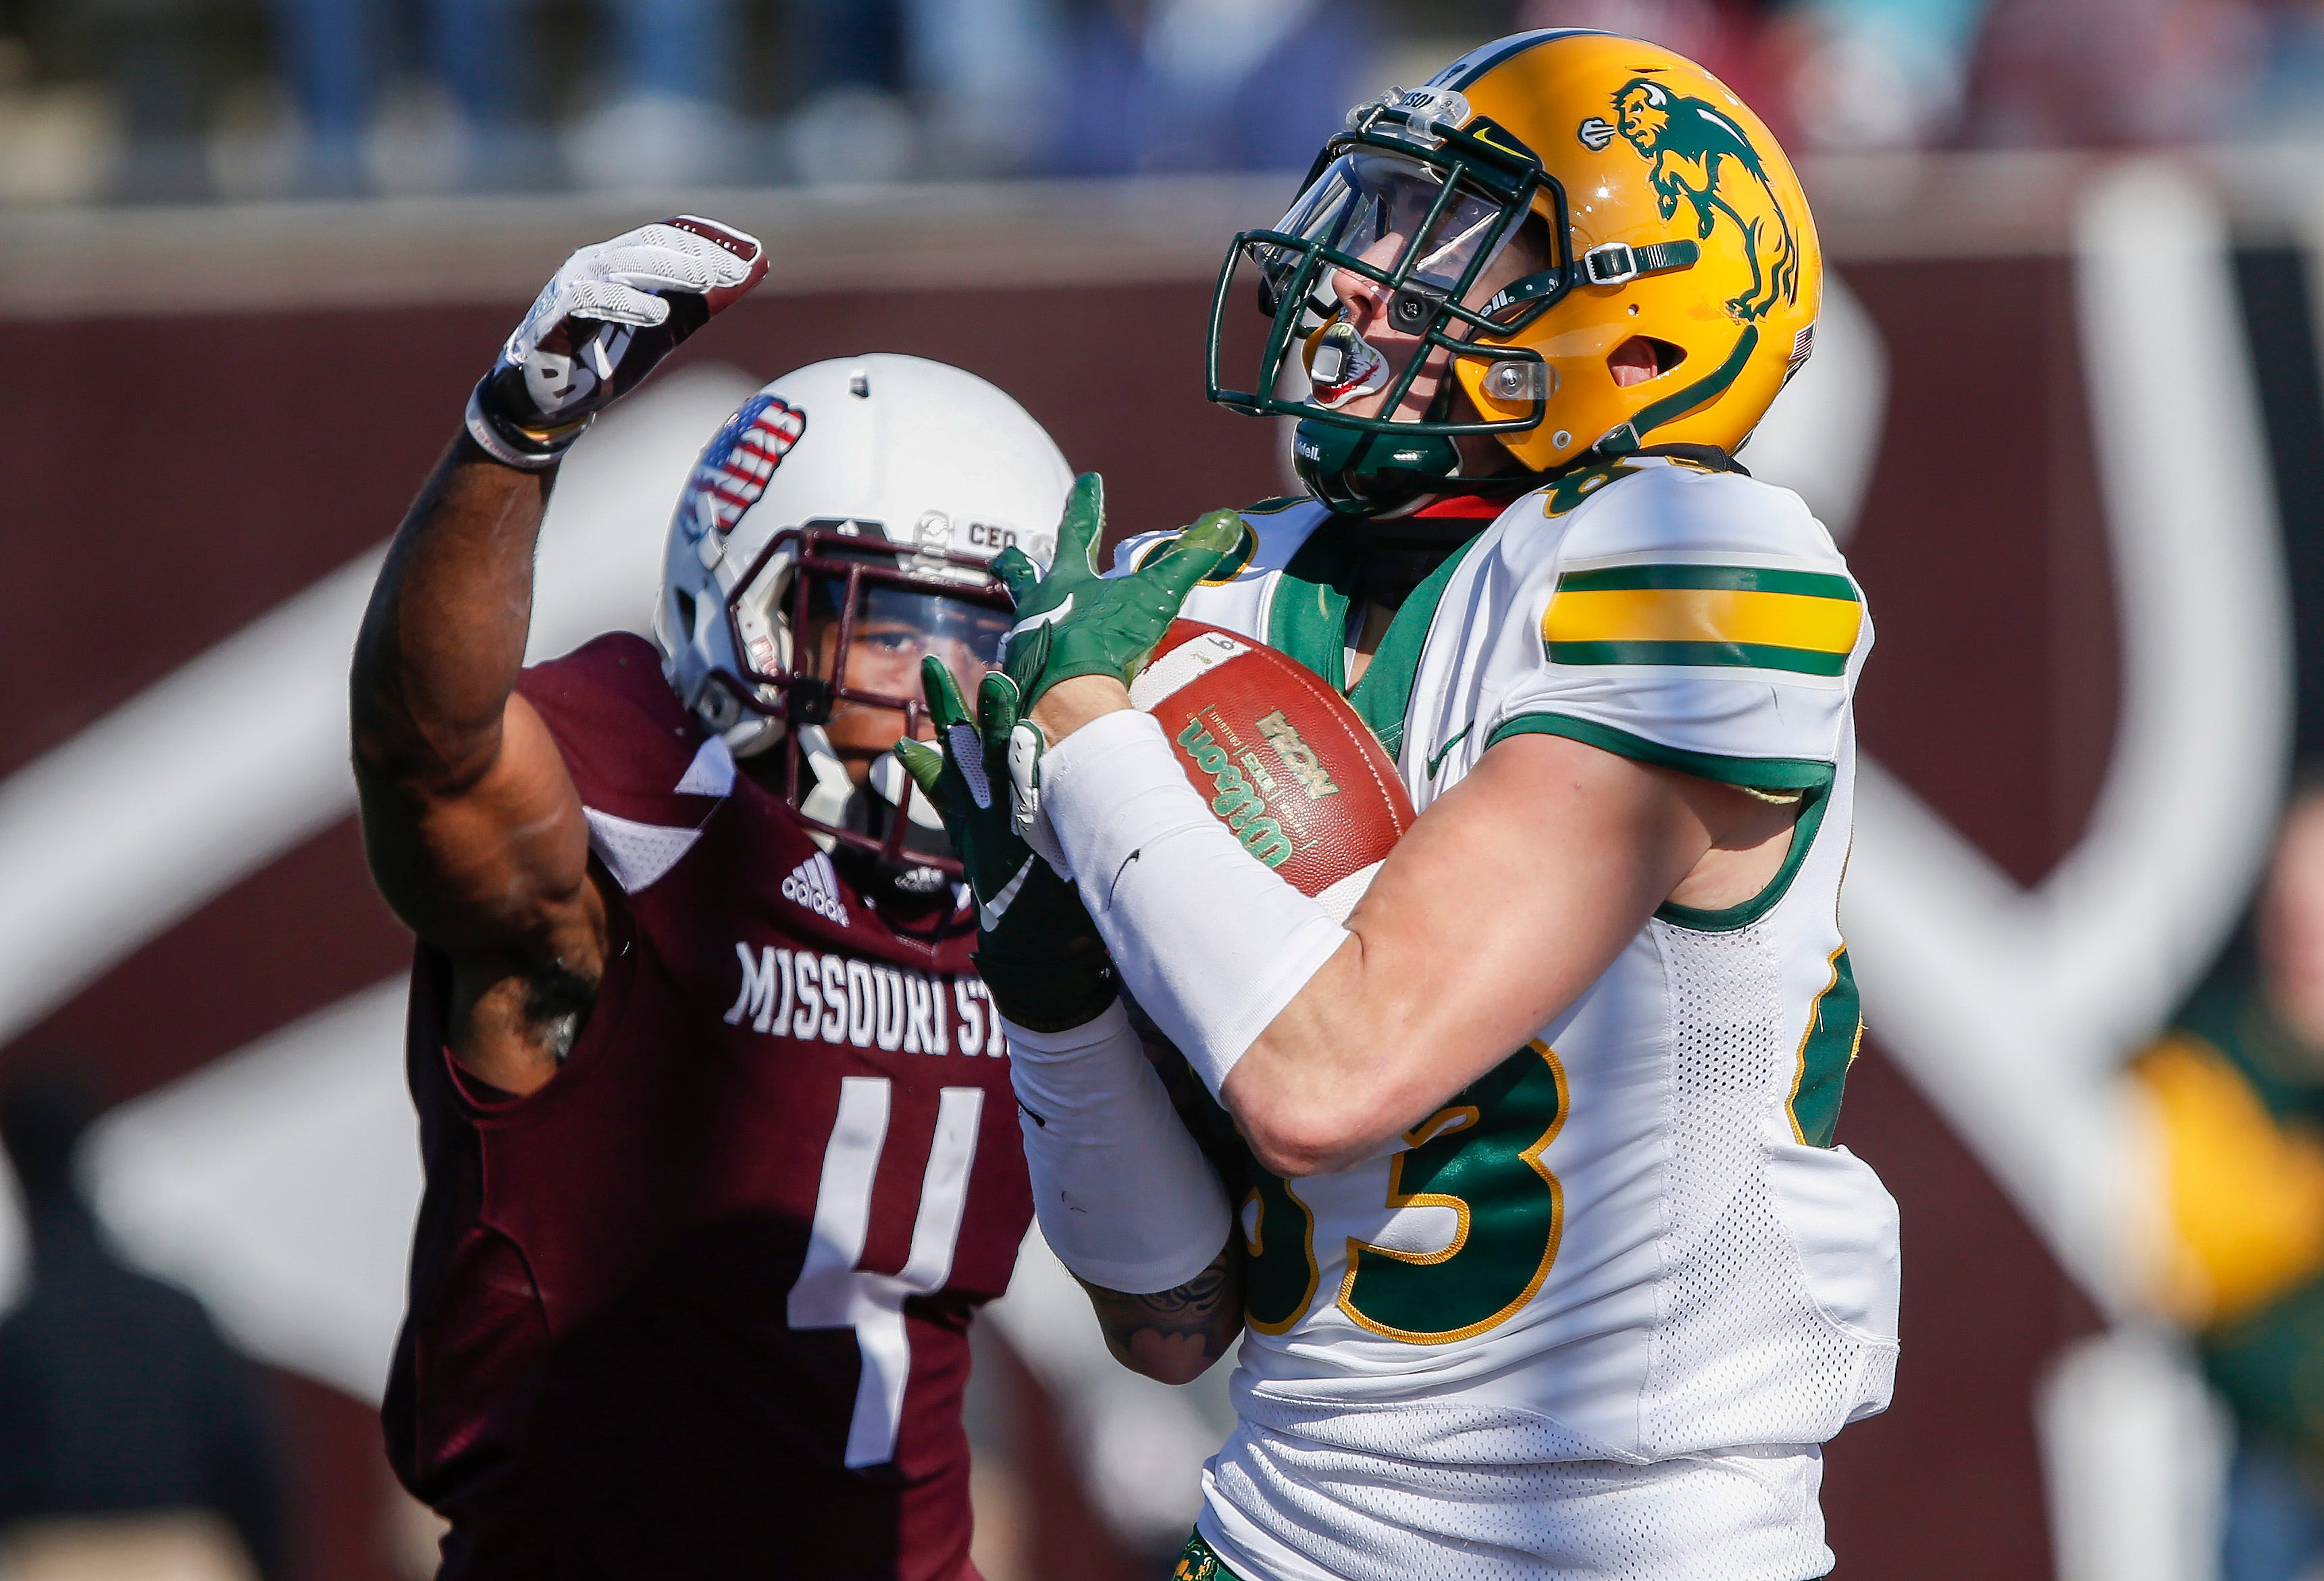 North Dakota State receiver Dallas Freeman brings in the catch for a touchdown during the Bison's game against Missouri State University at Plaster Stadium on Saturday, Nov. 10, 2018.